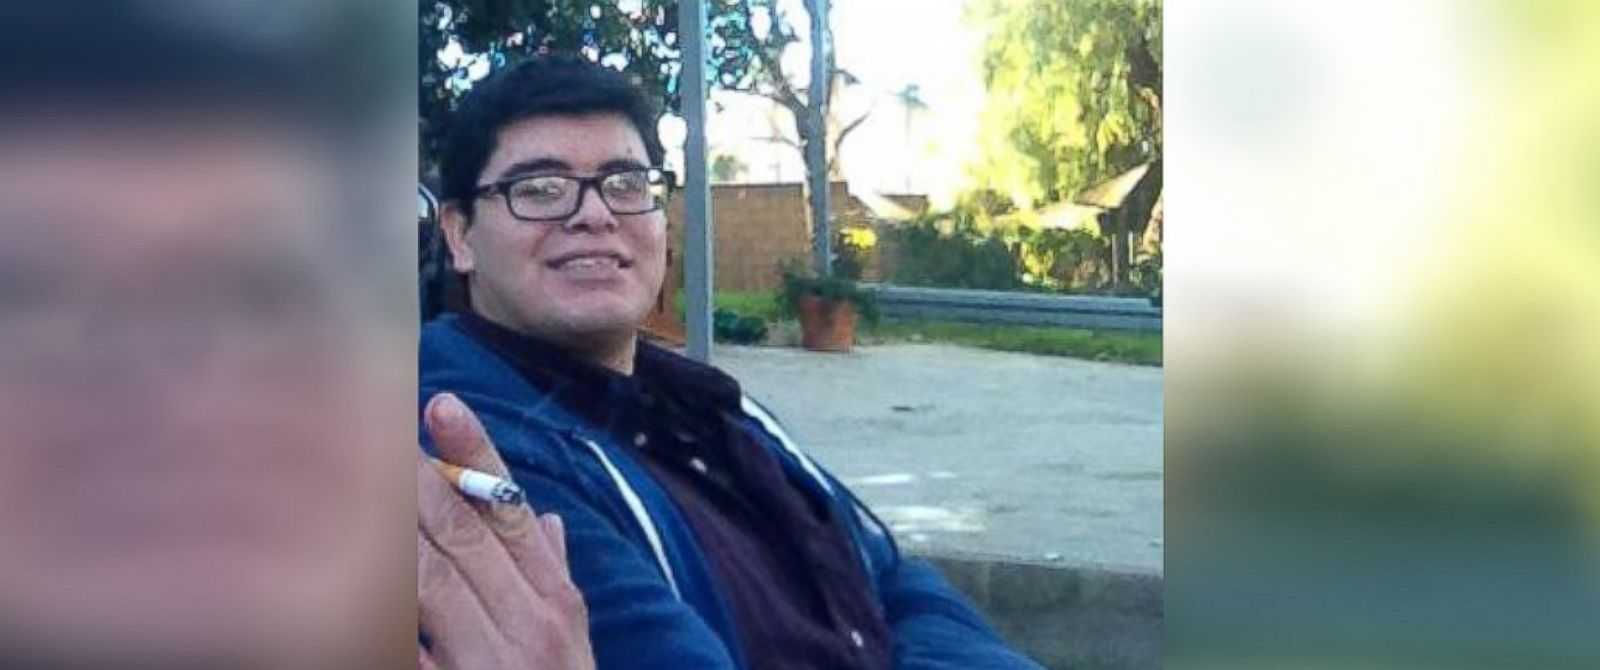 PHOTO: Enrique Marquez, seen here in a photograph taken in January and uploaded to Facebook.